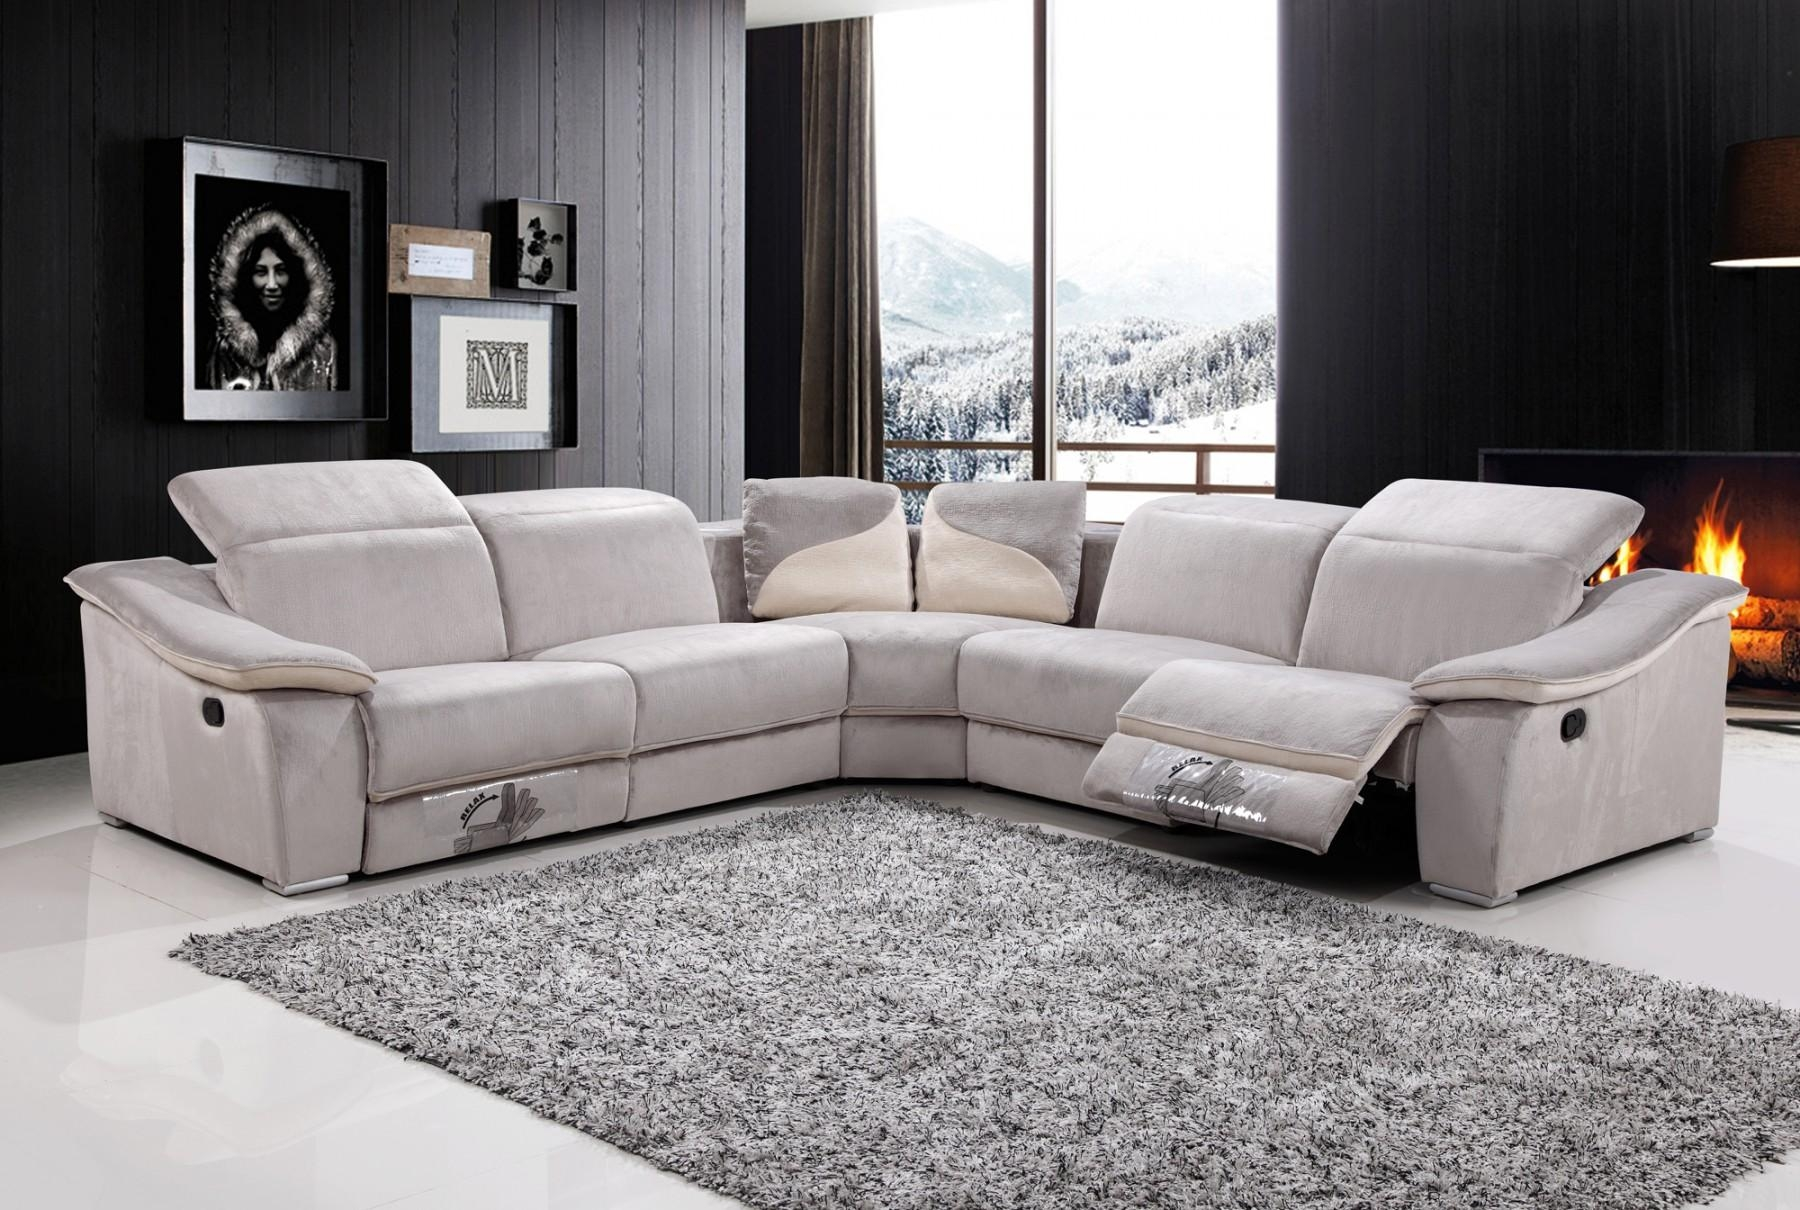 Sofas Center : High Quality Sectional Sofa Brandsquality Azbest Regarding The Bay Sofas (View 20 of 20)